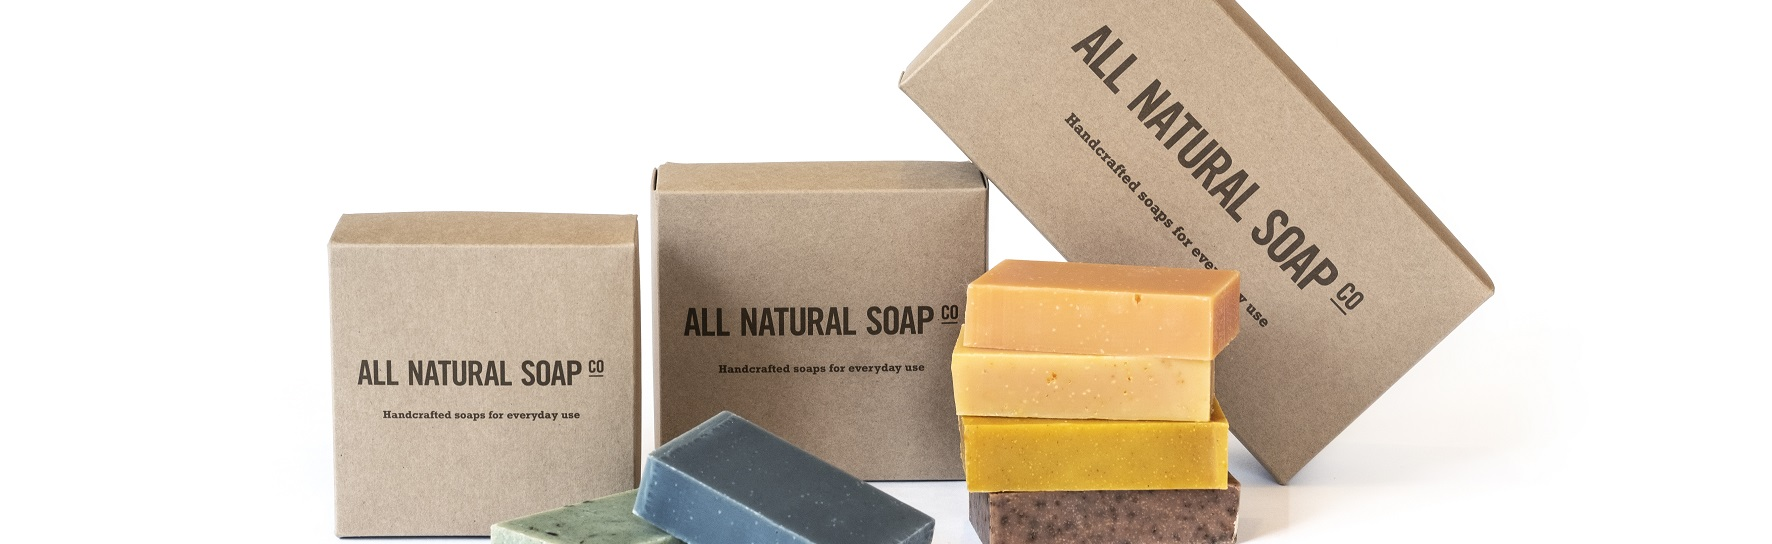 Total-Flexibility_ALL-NATURAL-SOAP-Co